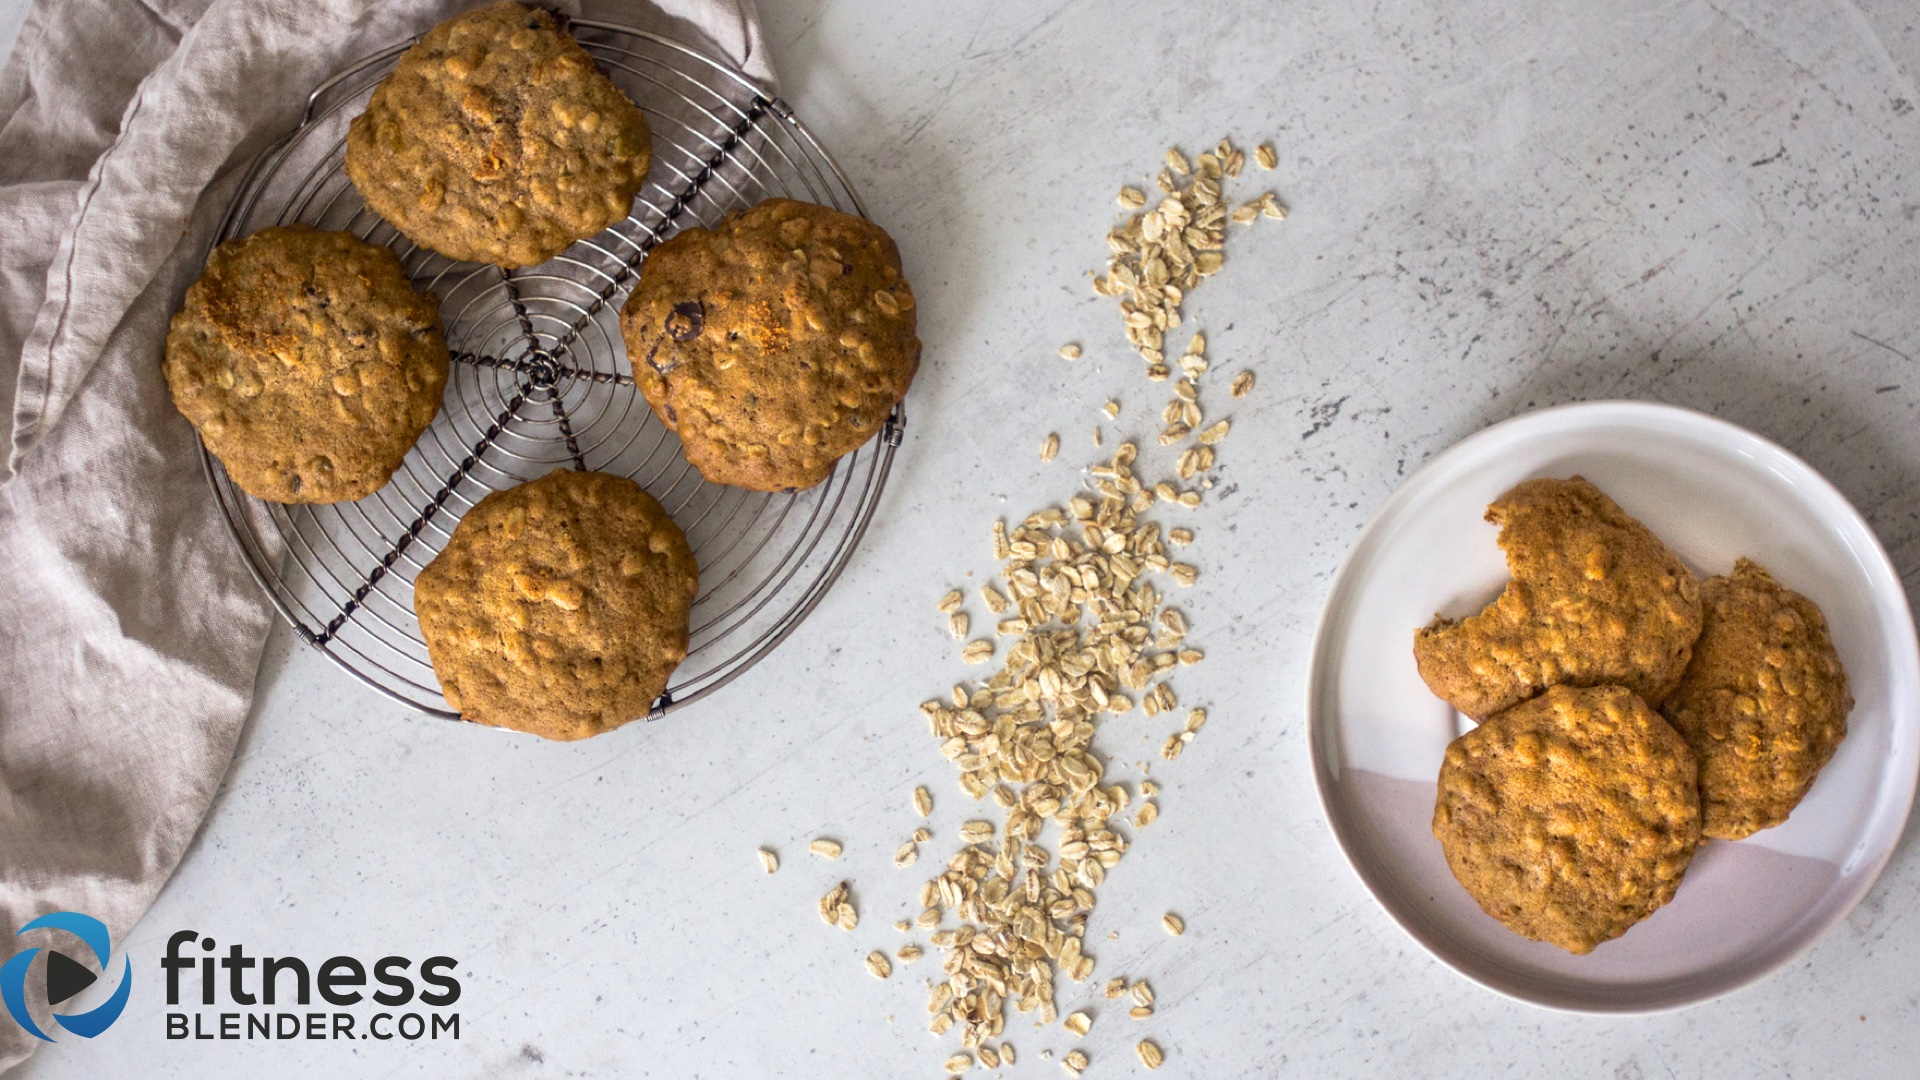 Healthy Oatmeal Cookies Simple Ingredients Easy To Make Fitness